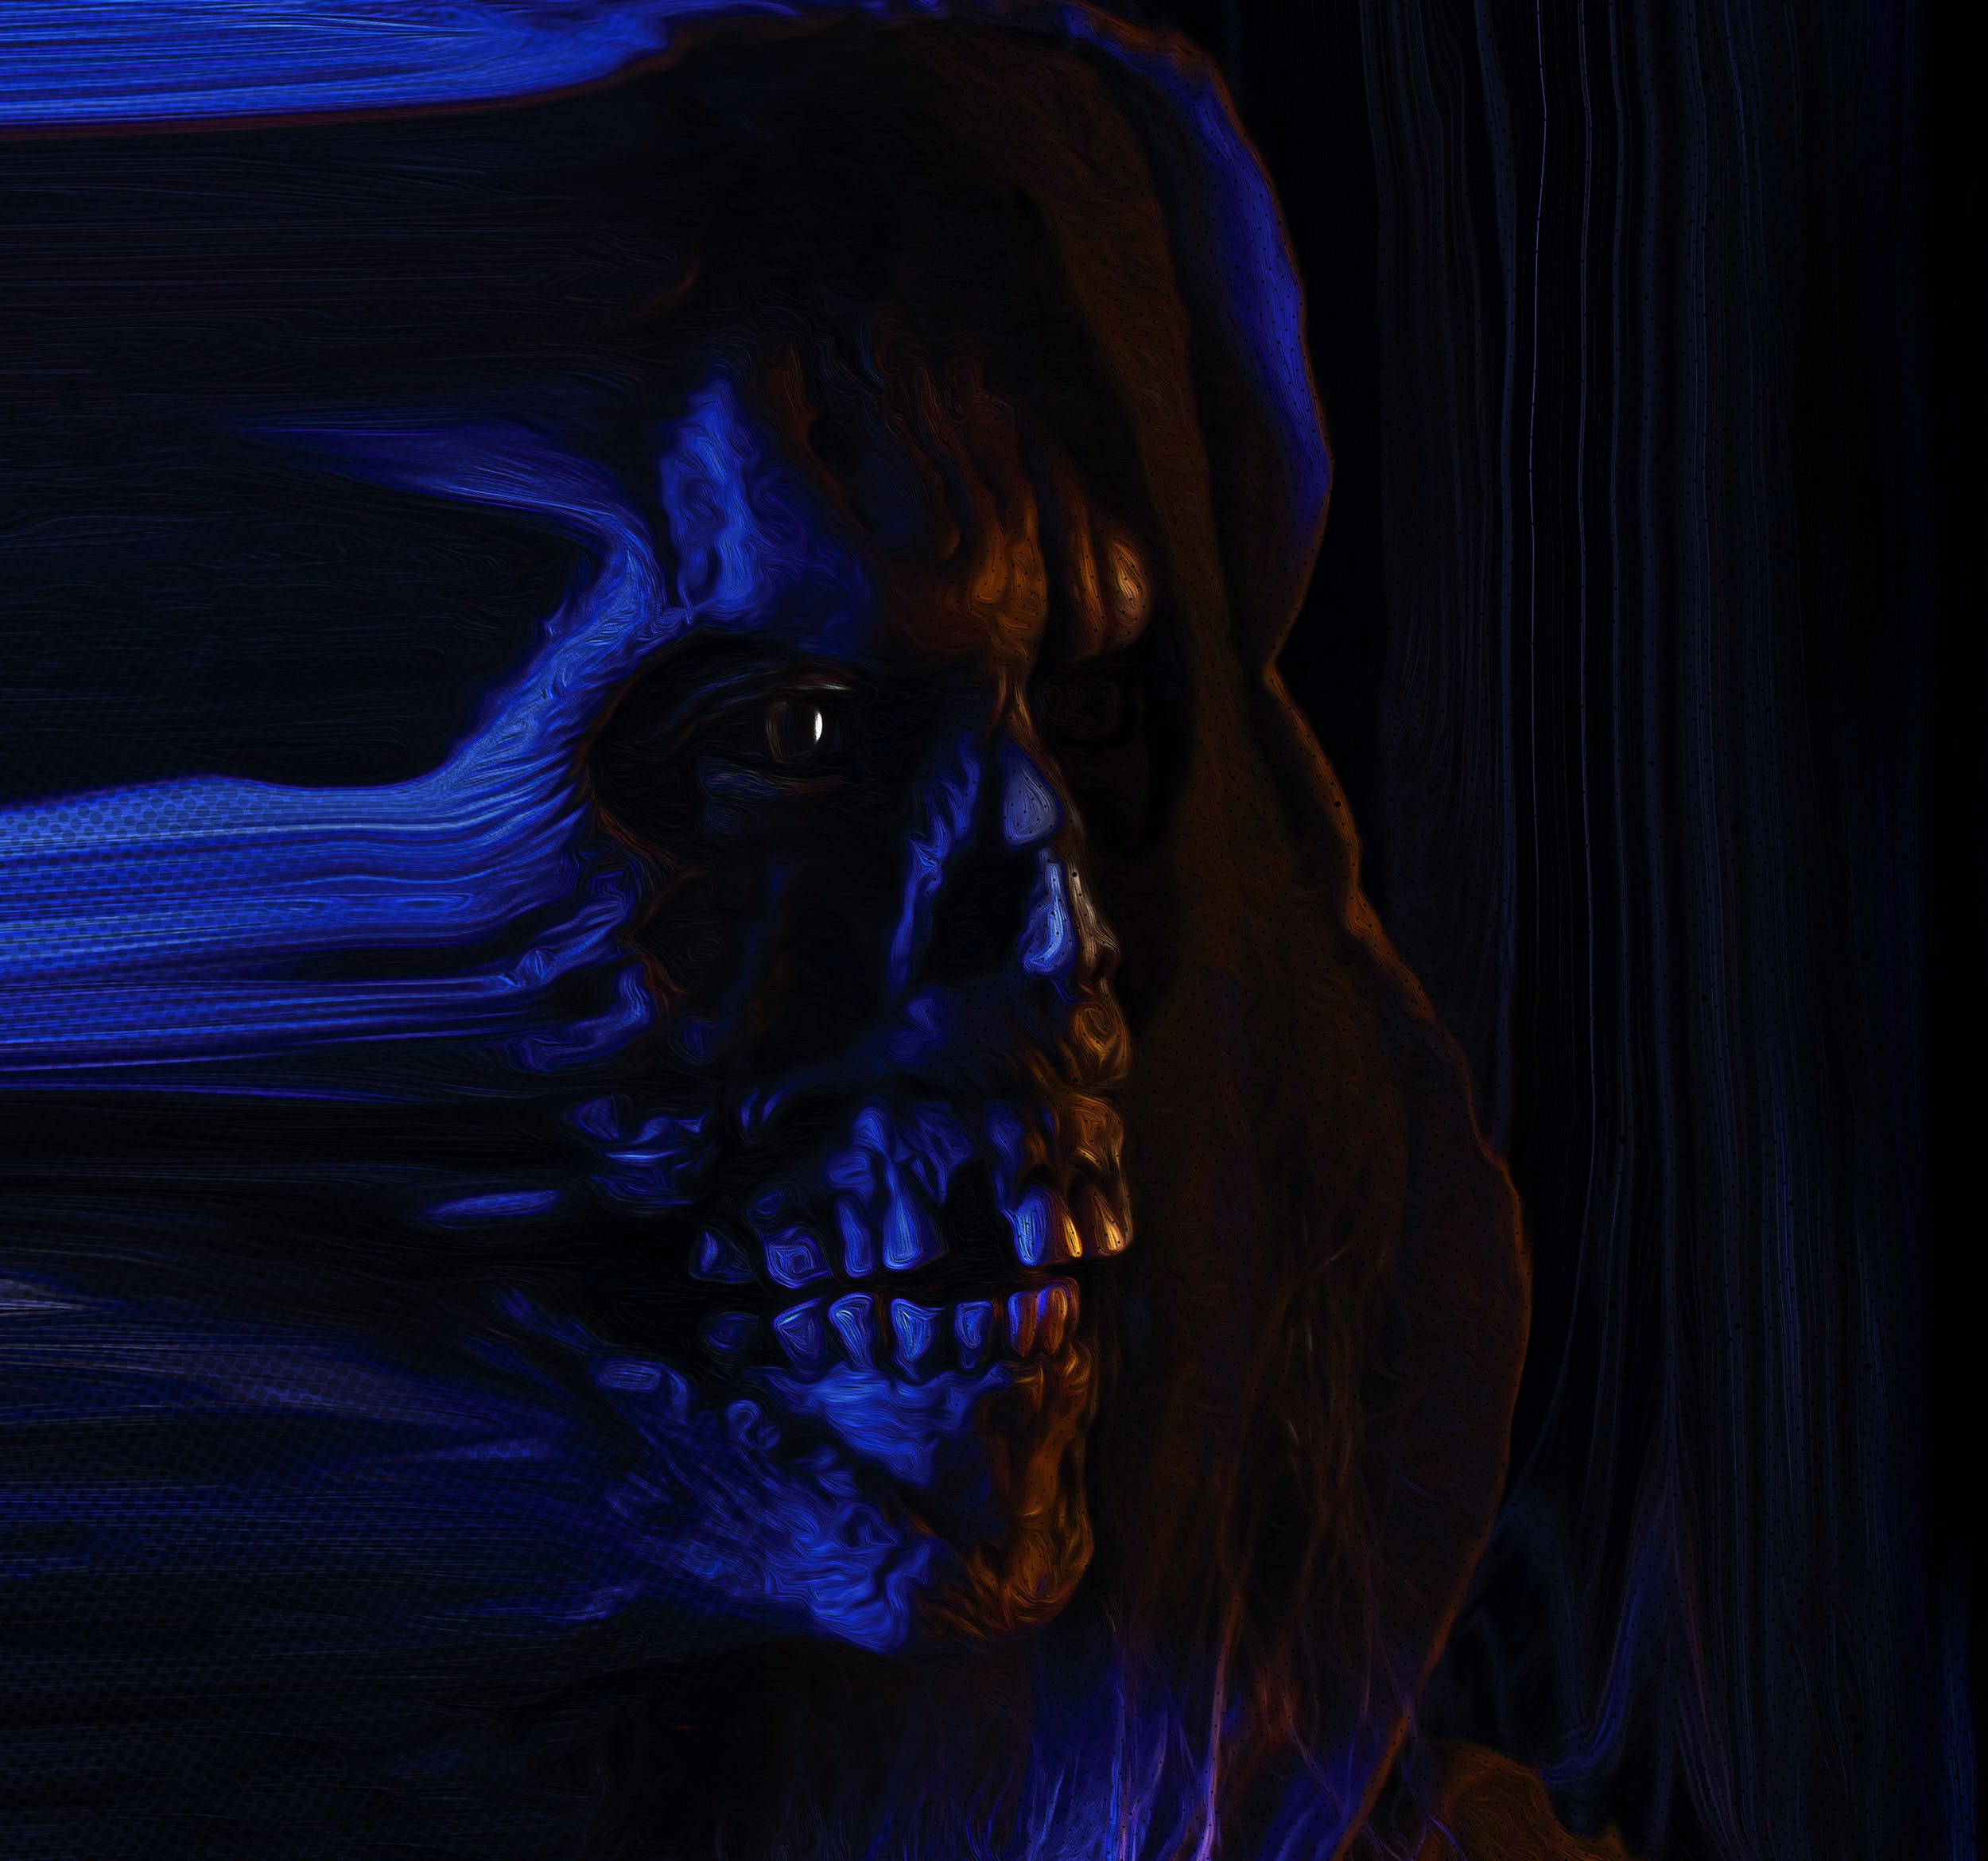 The CREEPSHOW Poster You Never Saw… Until Now